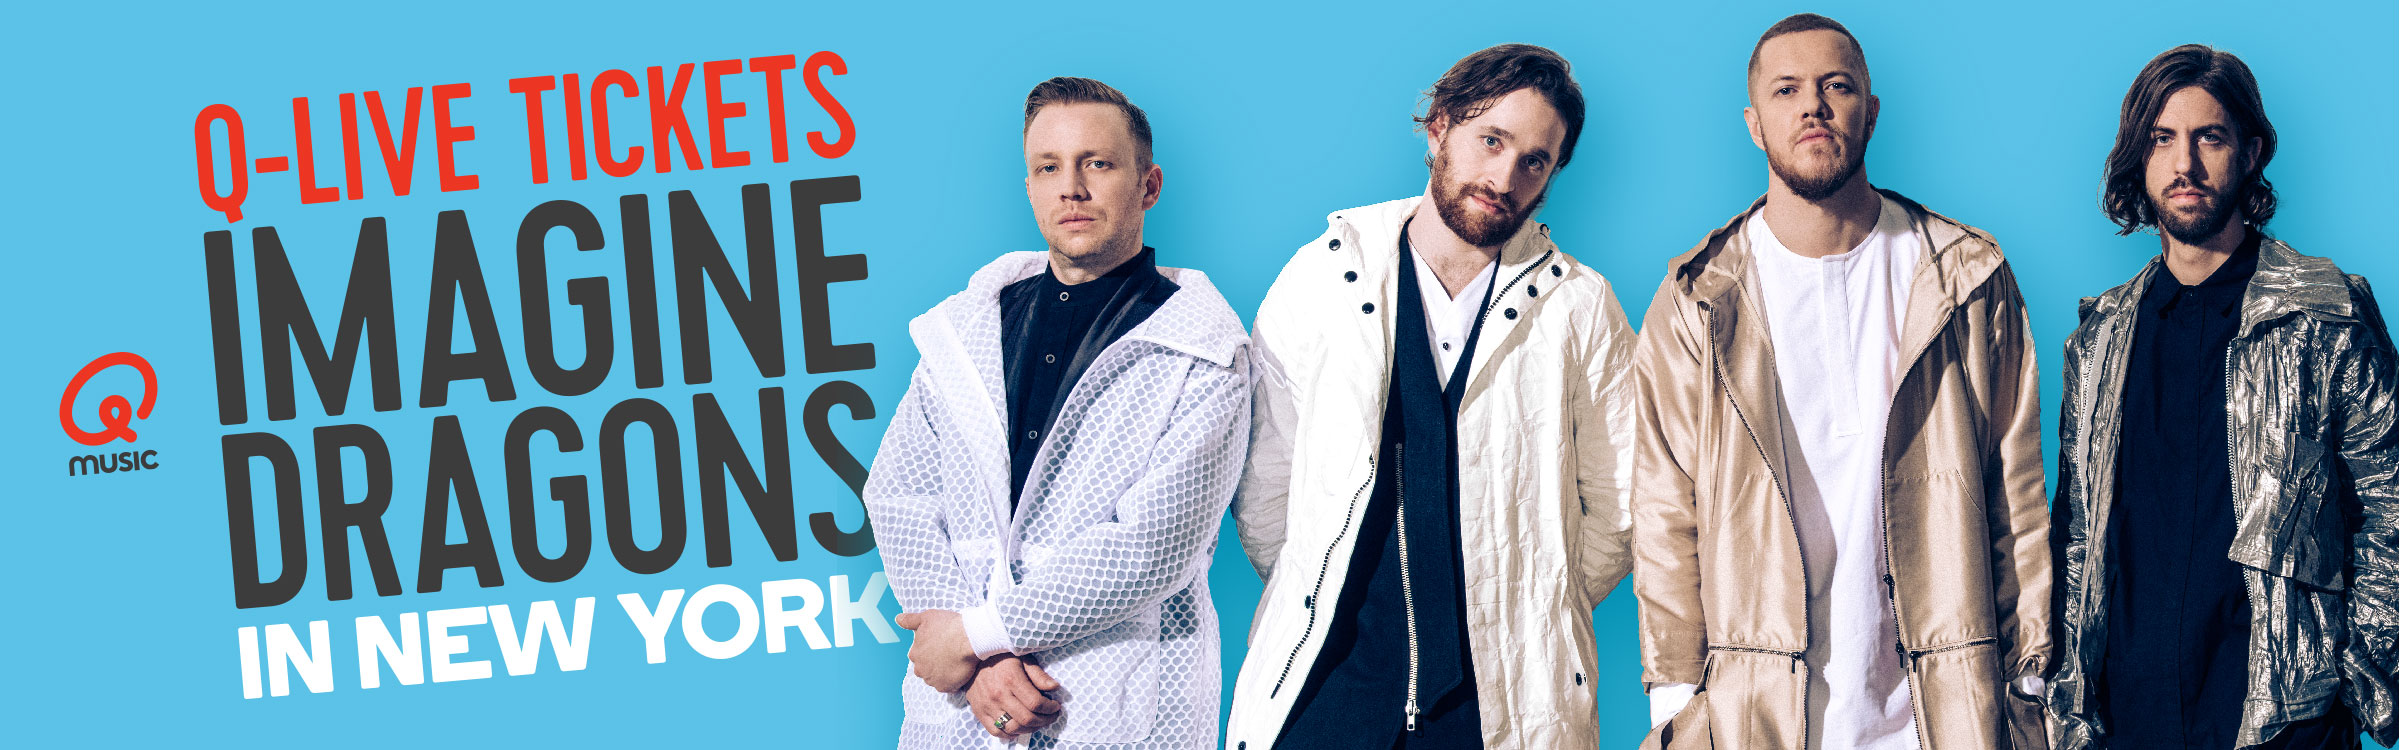 Qmusic actionheader imaginedragons